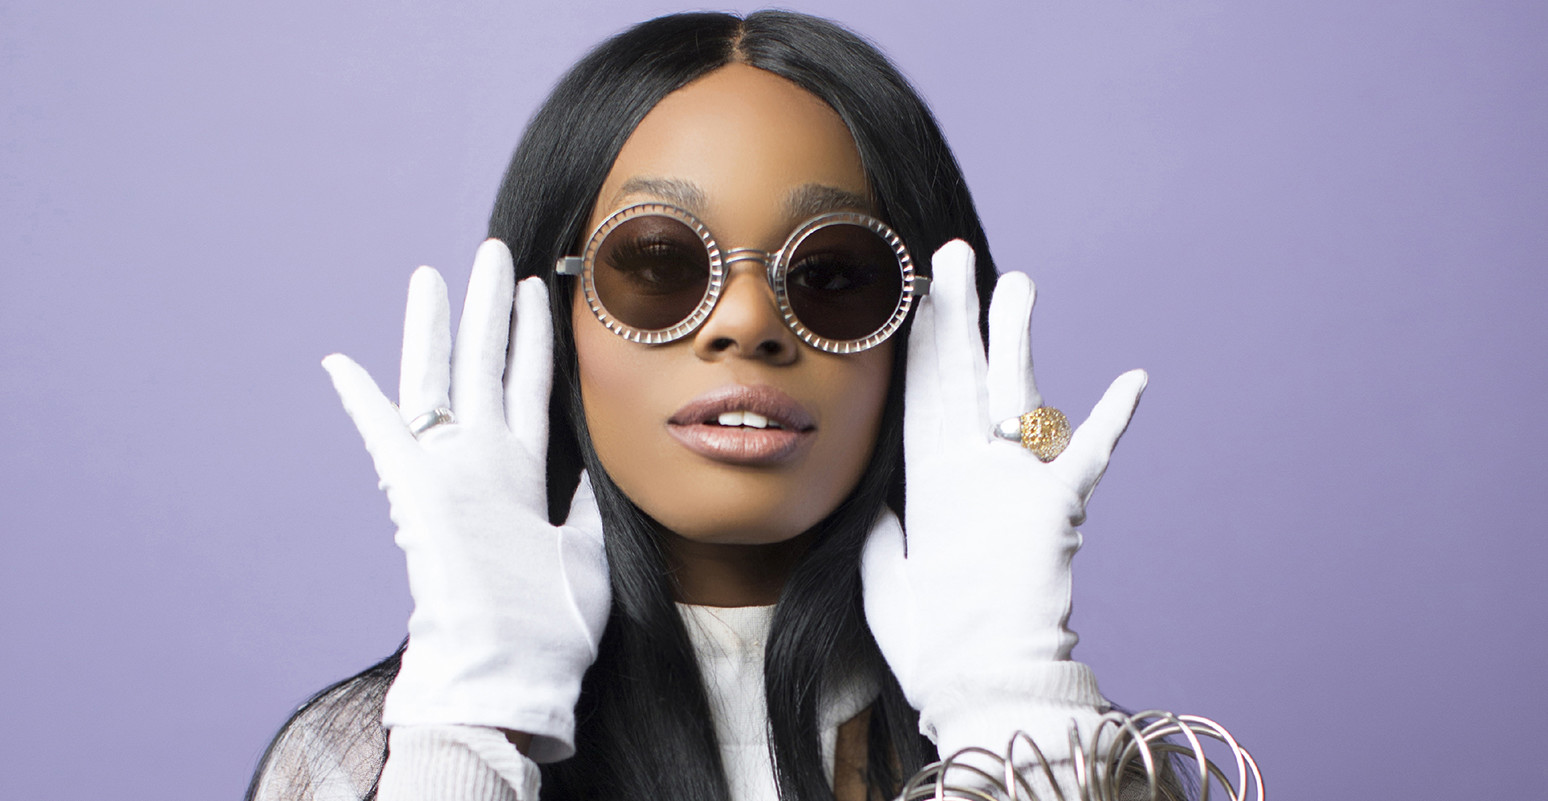 Rapper Azealia Banks poses for a portrait on March 13, 2016 in Brooklyn, New York. (Photo by Santiago Felipe/Getty Images Portrait)